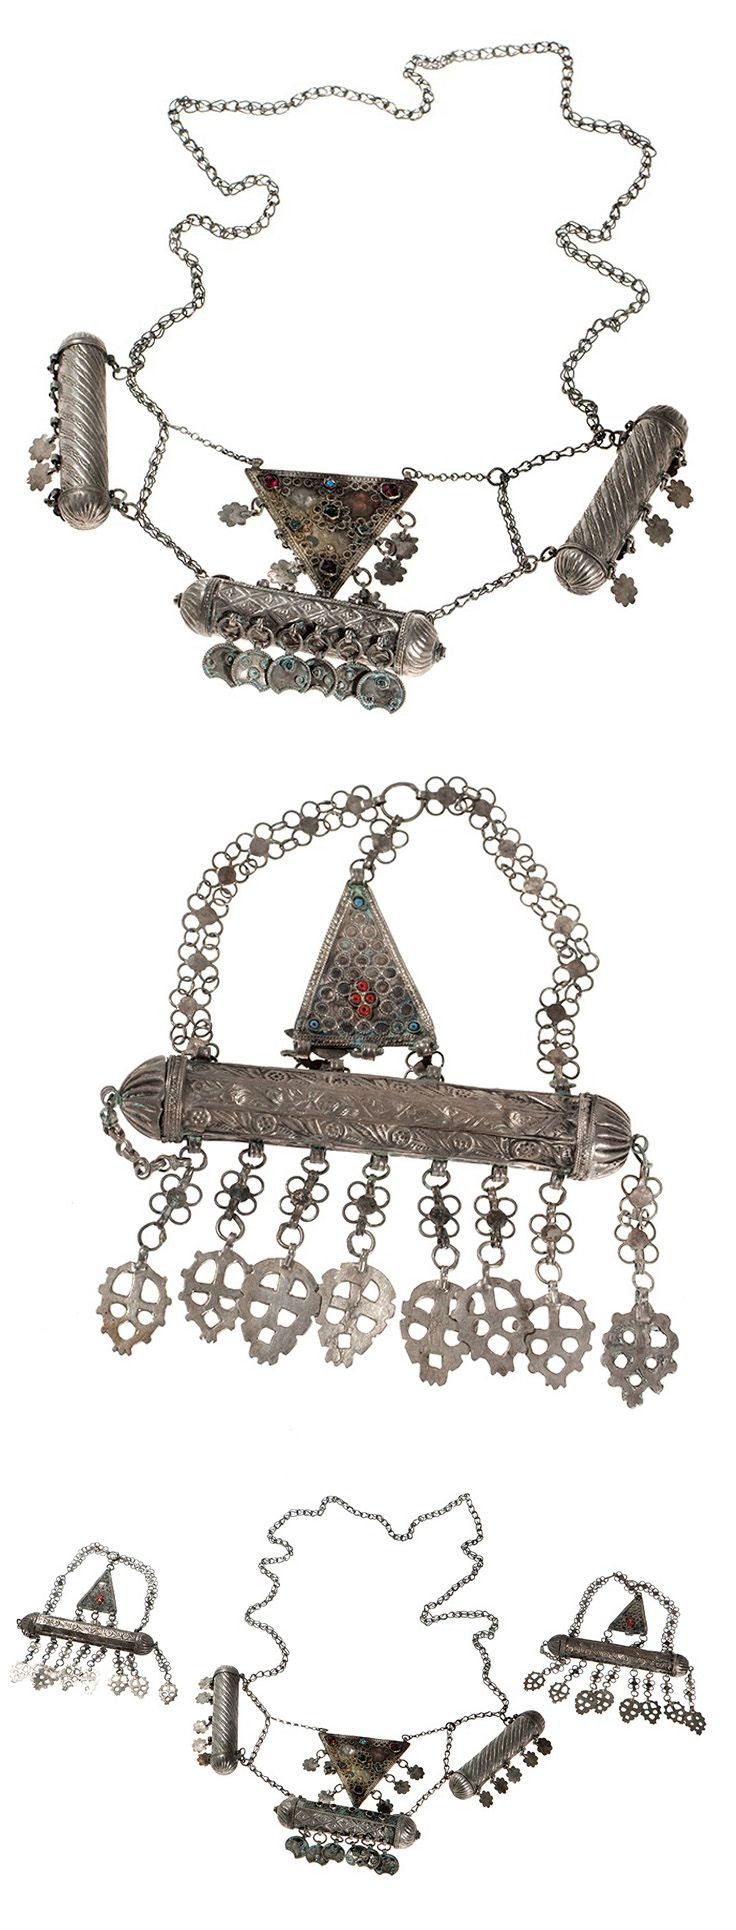 Bedouin silver plated amulet necklace and two pendants | Silver plated metal, silver, glass beads and gemstones | 19th / 20th century | 700€